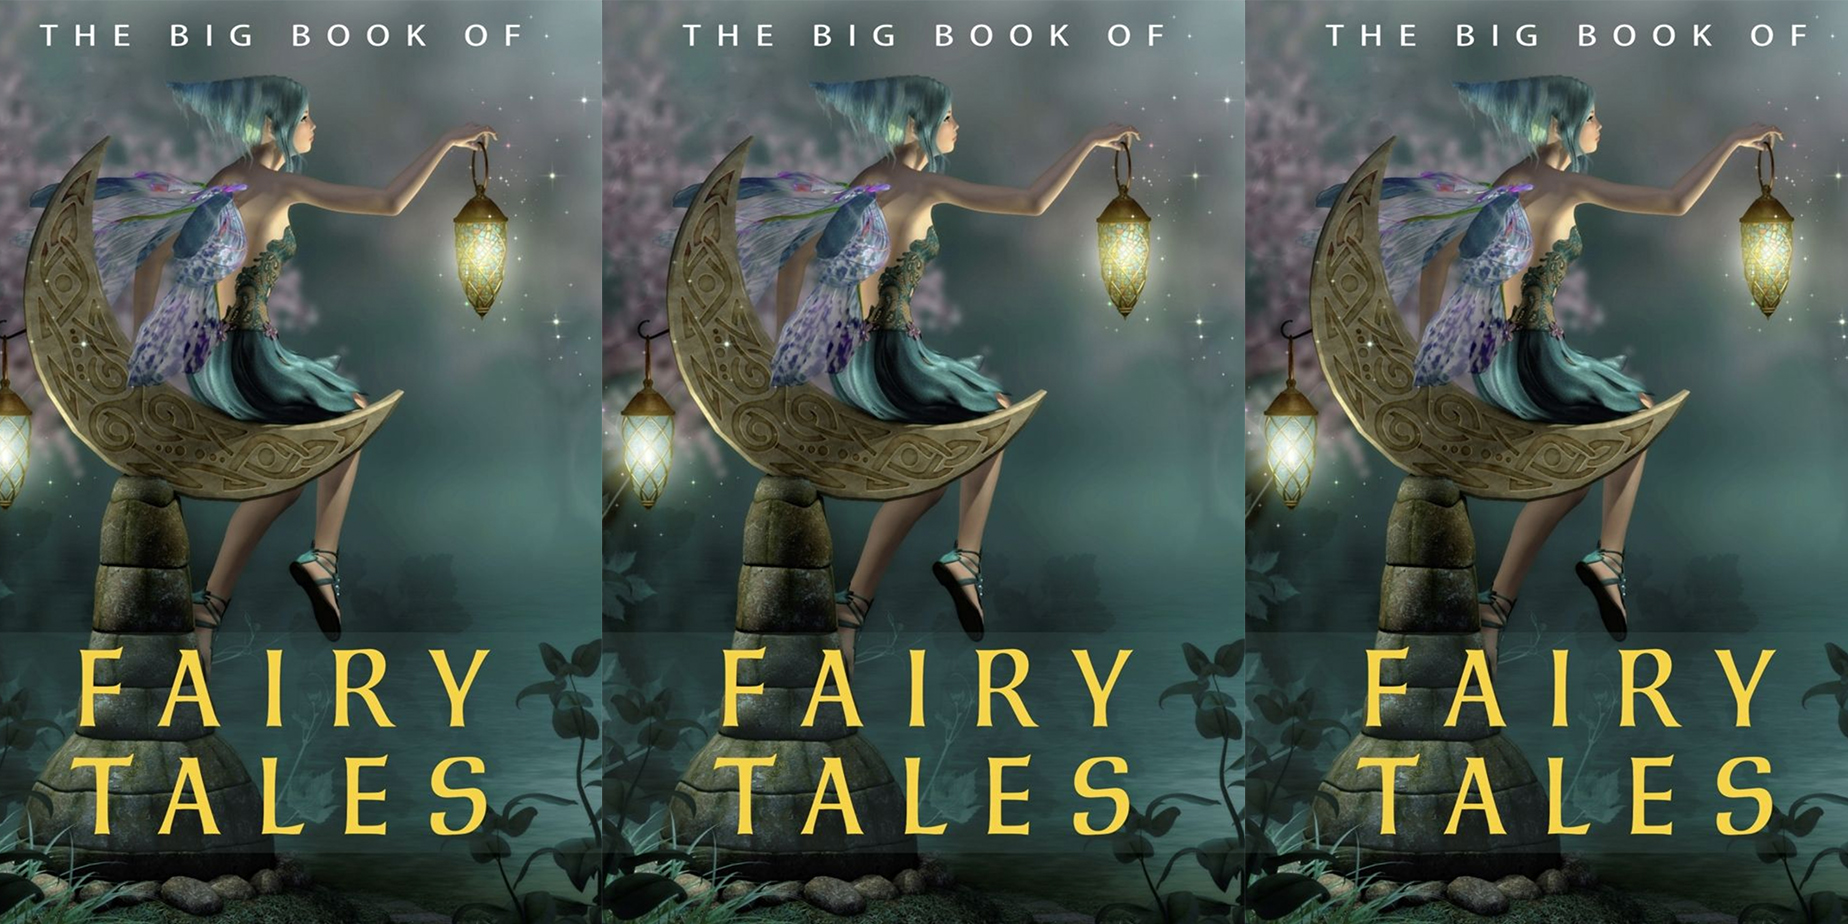 Download 1,500 fairy tales on your Kindle eBook for FREE + more classics